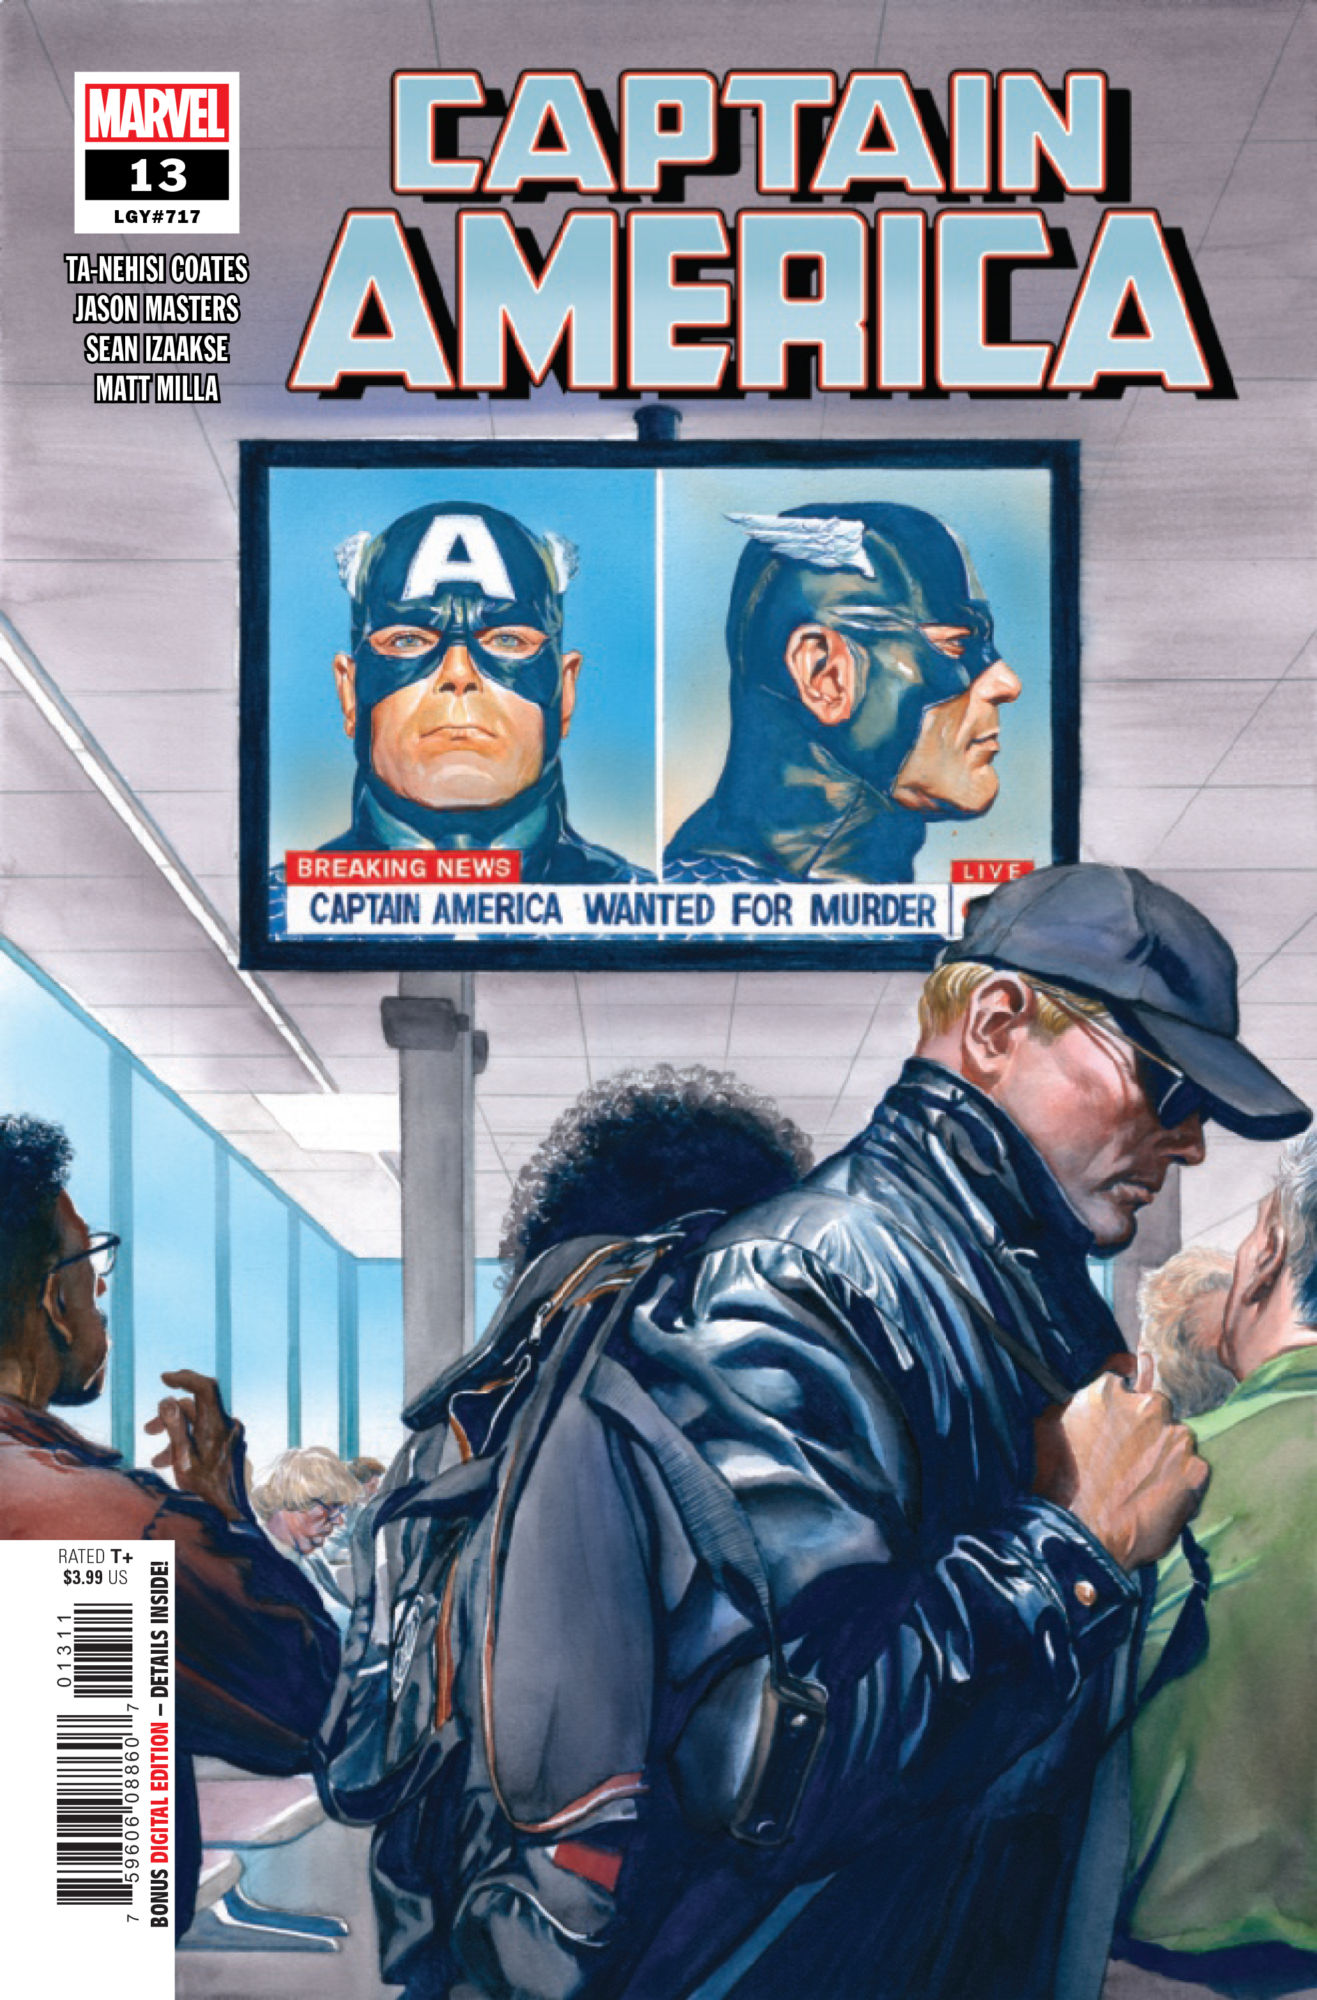 Captain America #13 review: these befuddled masses